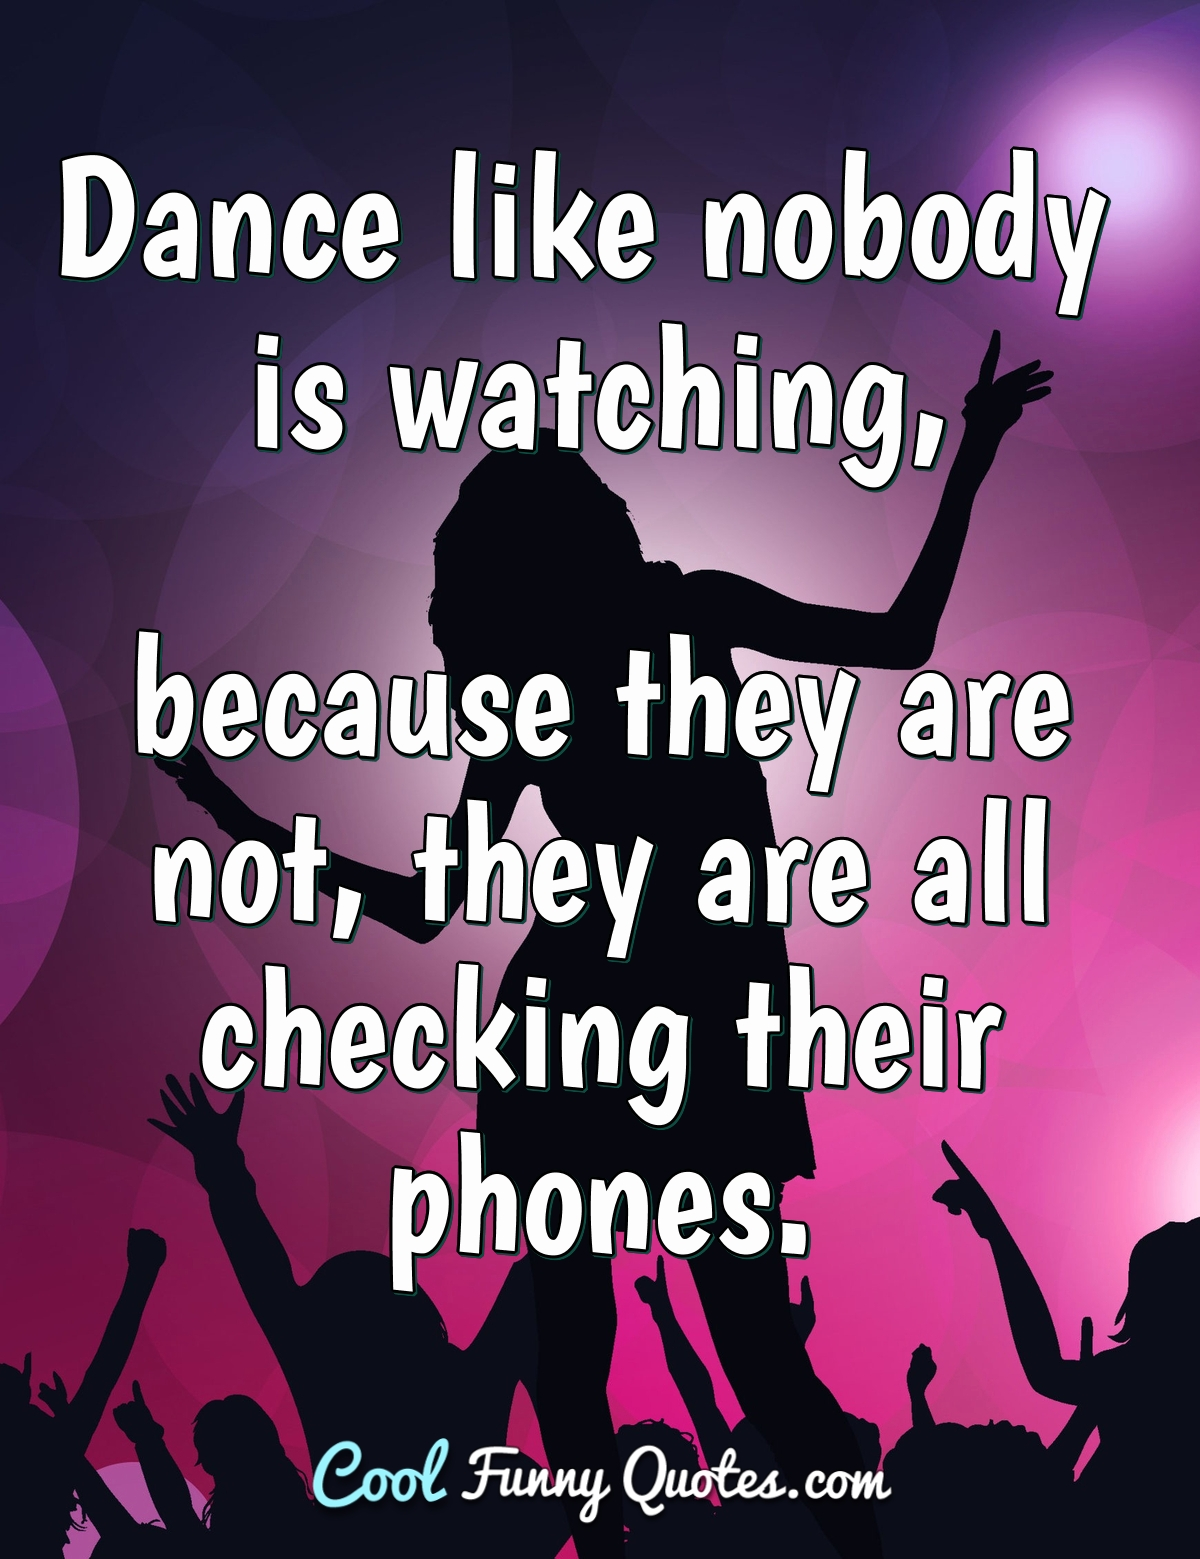 Dance like nobody is watching, because they are not, they are all